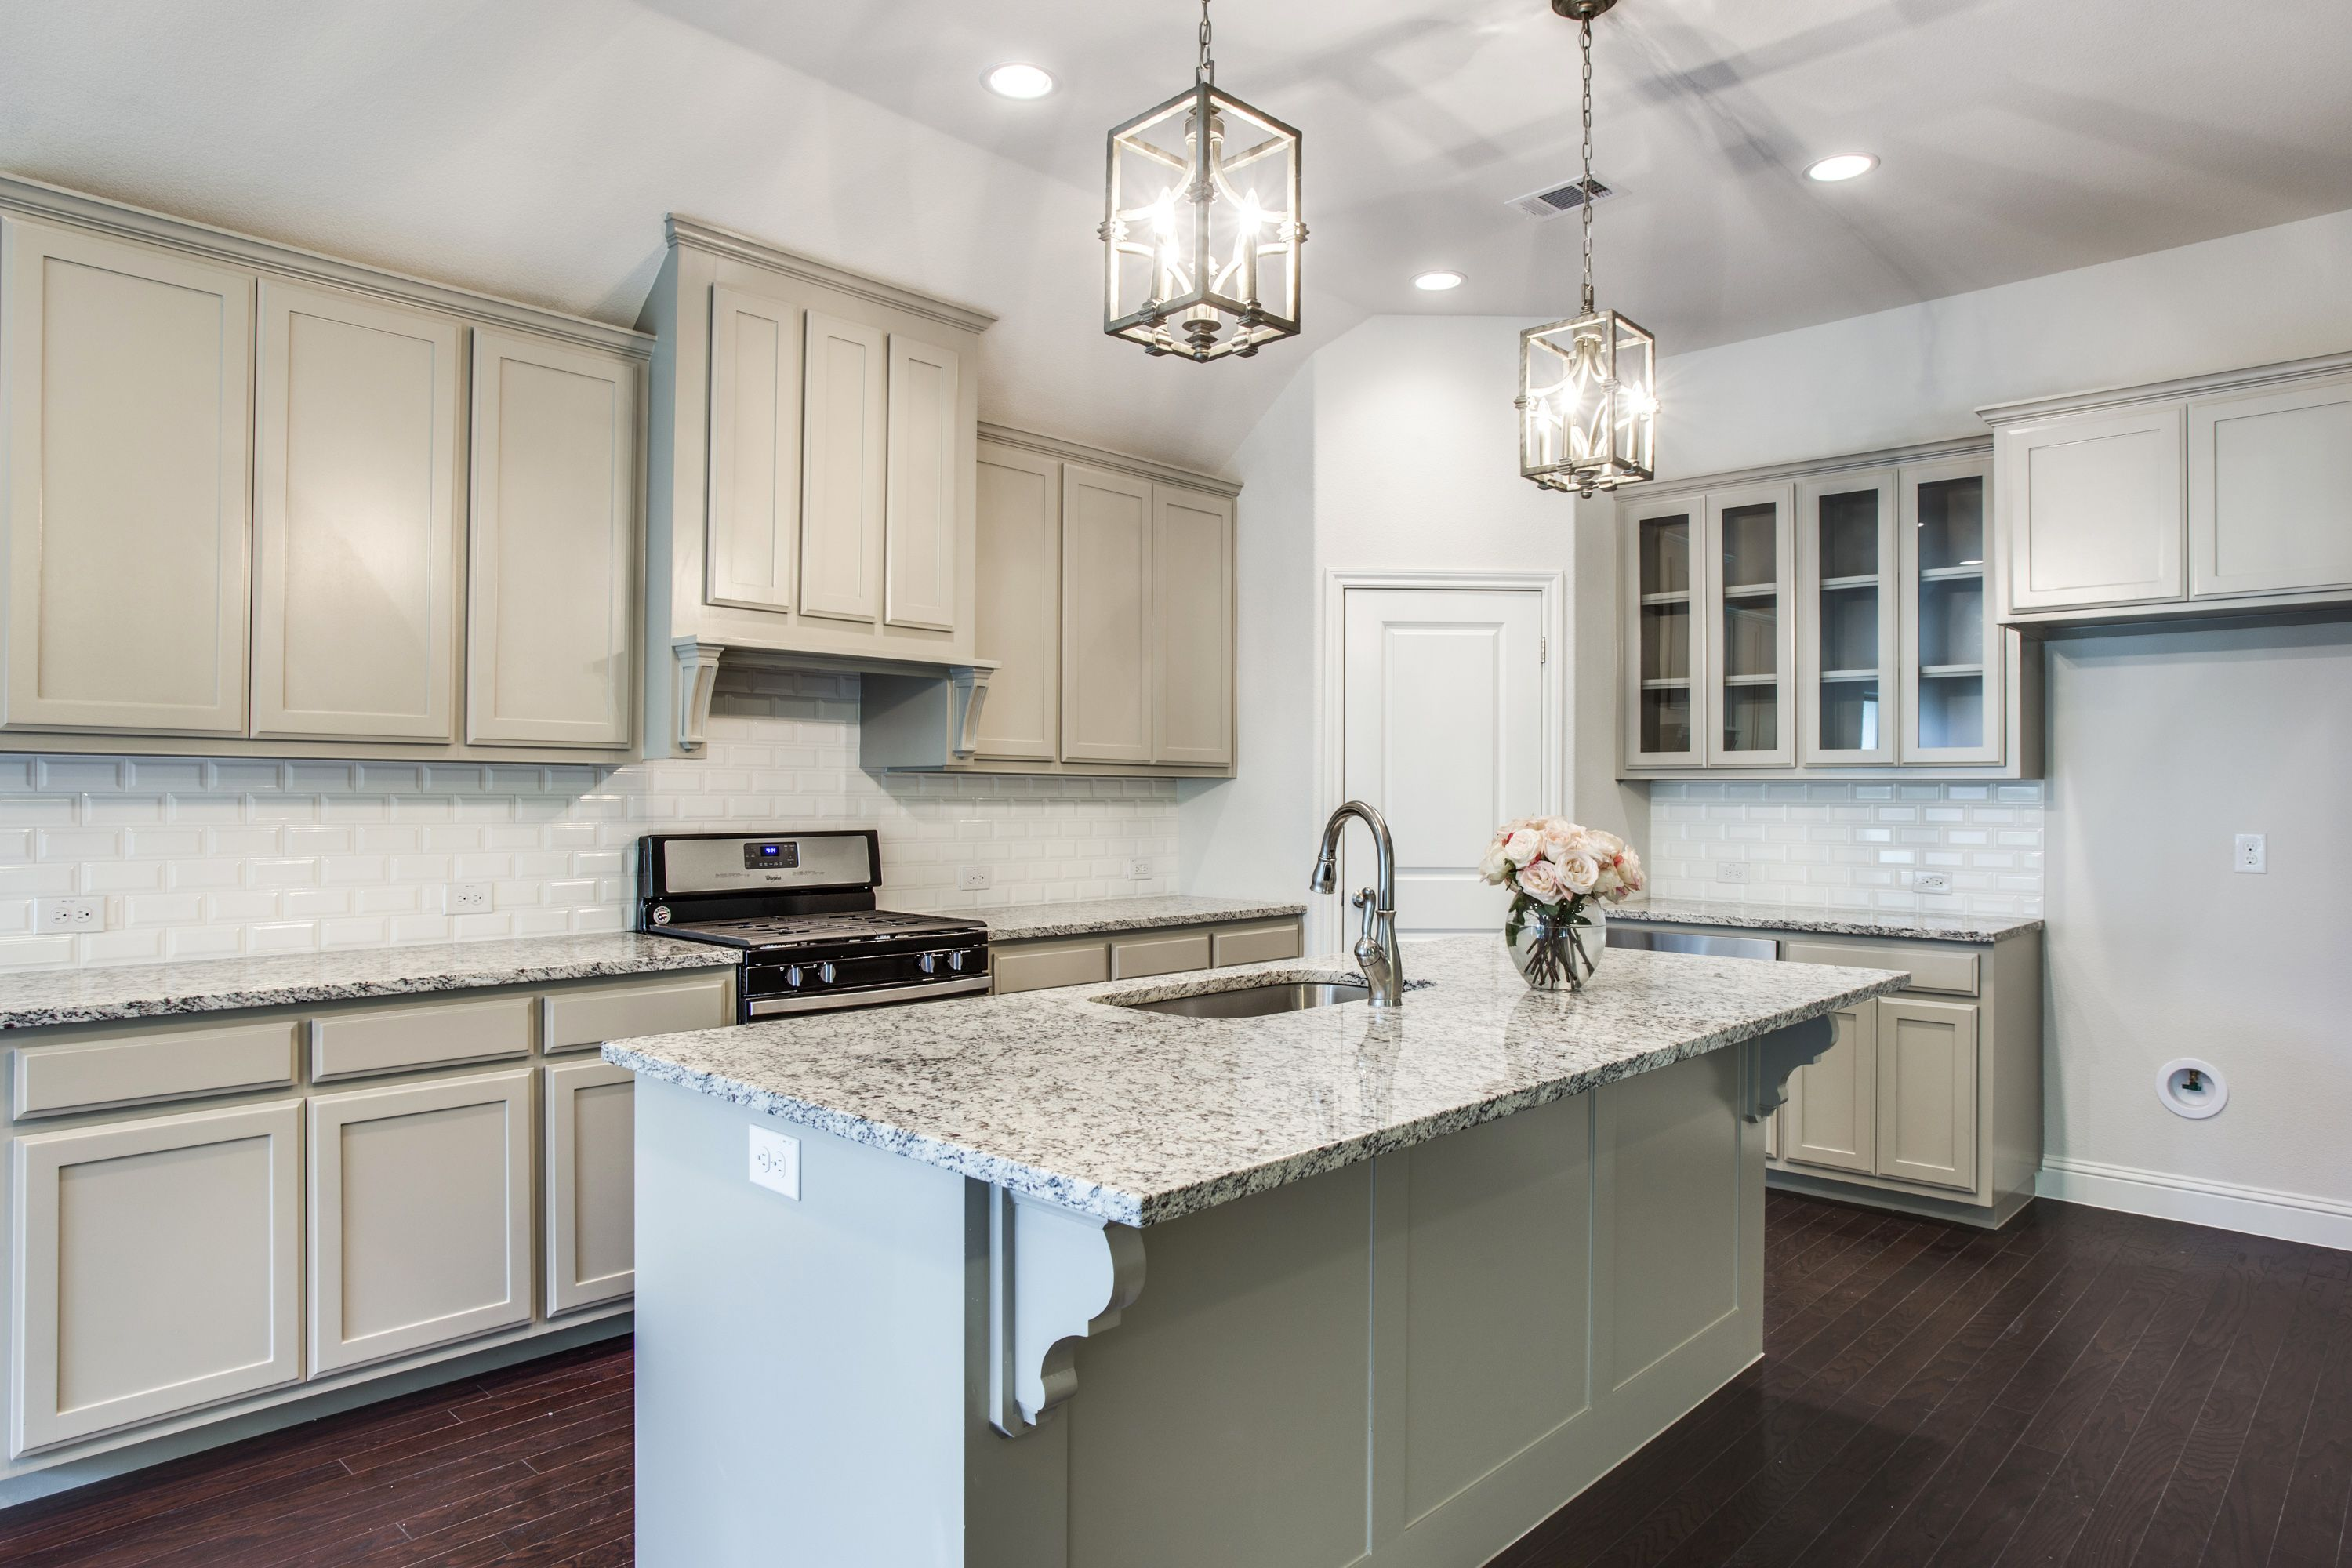 amazing gray cabinets white g countertops southern style warm and welcoming clarity homes on kitchen decor grey cabinets id=79124